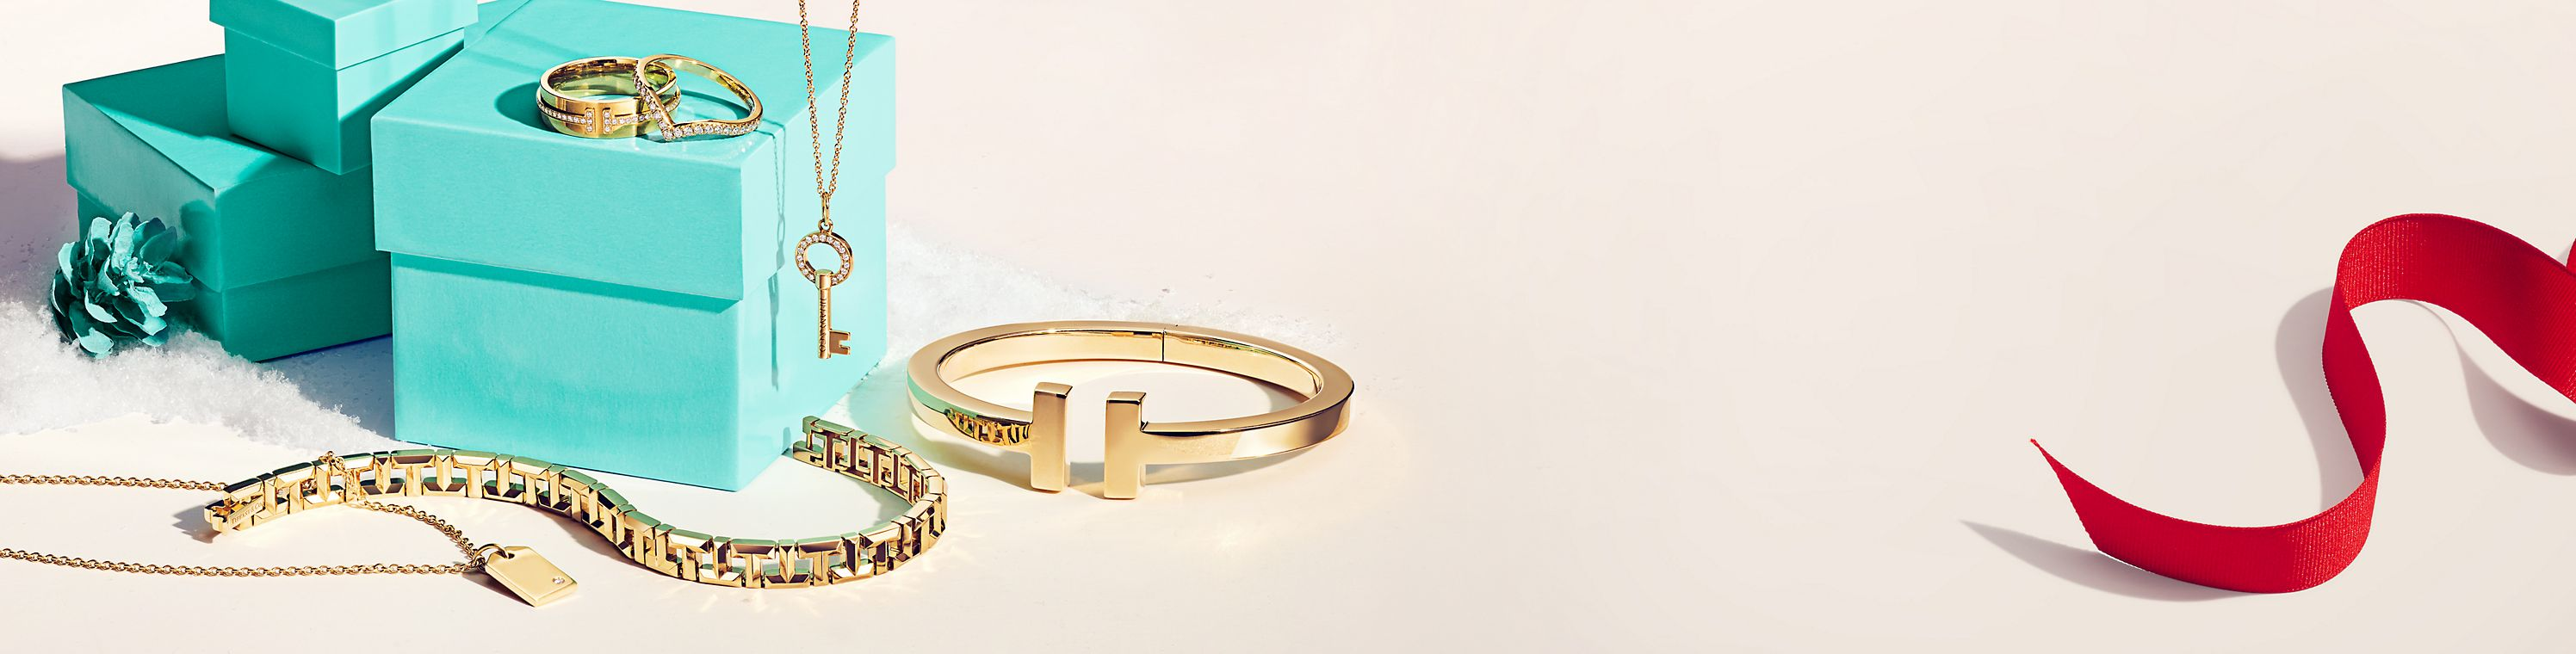 Idee regalo per il Natale Tiffany & Co.